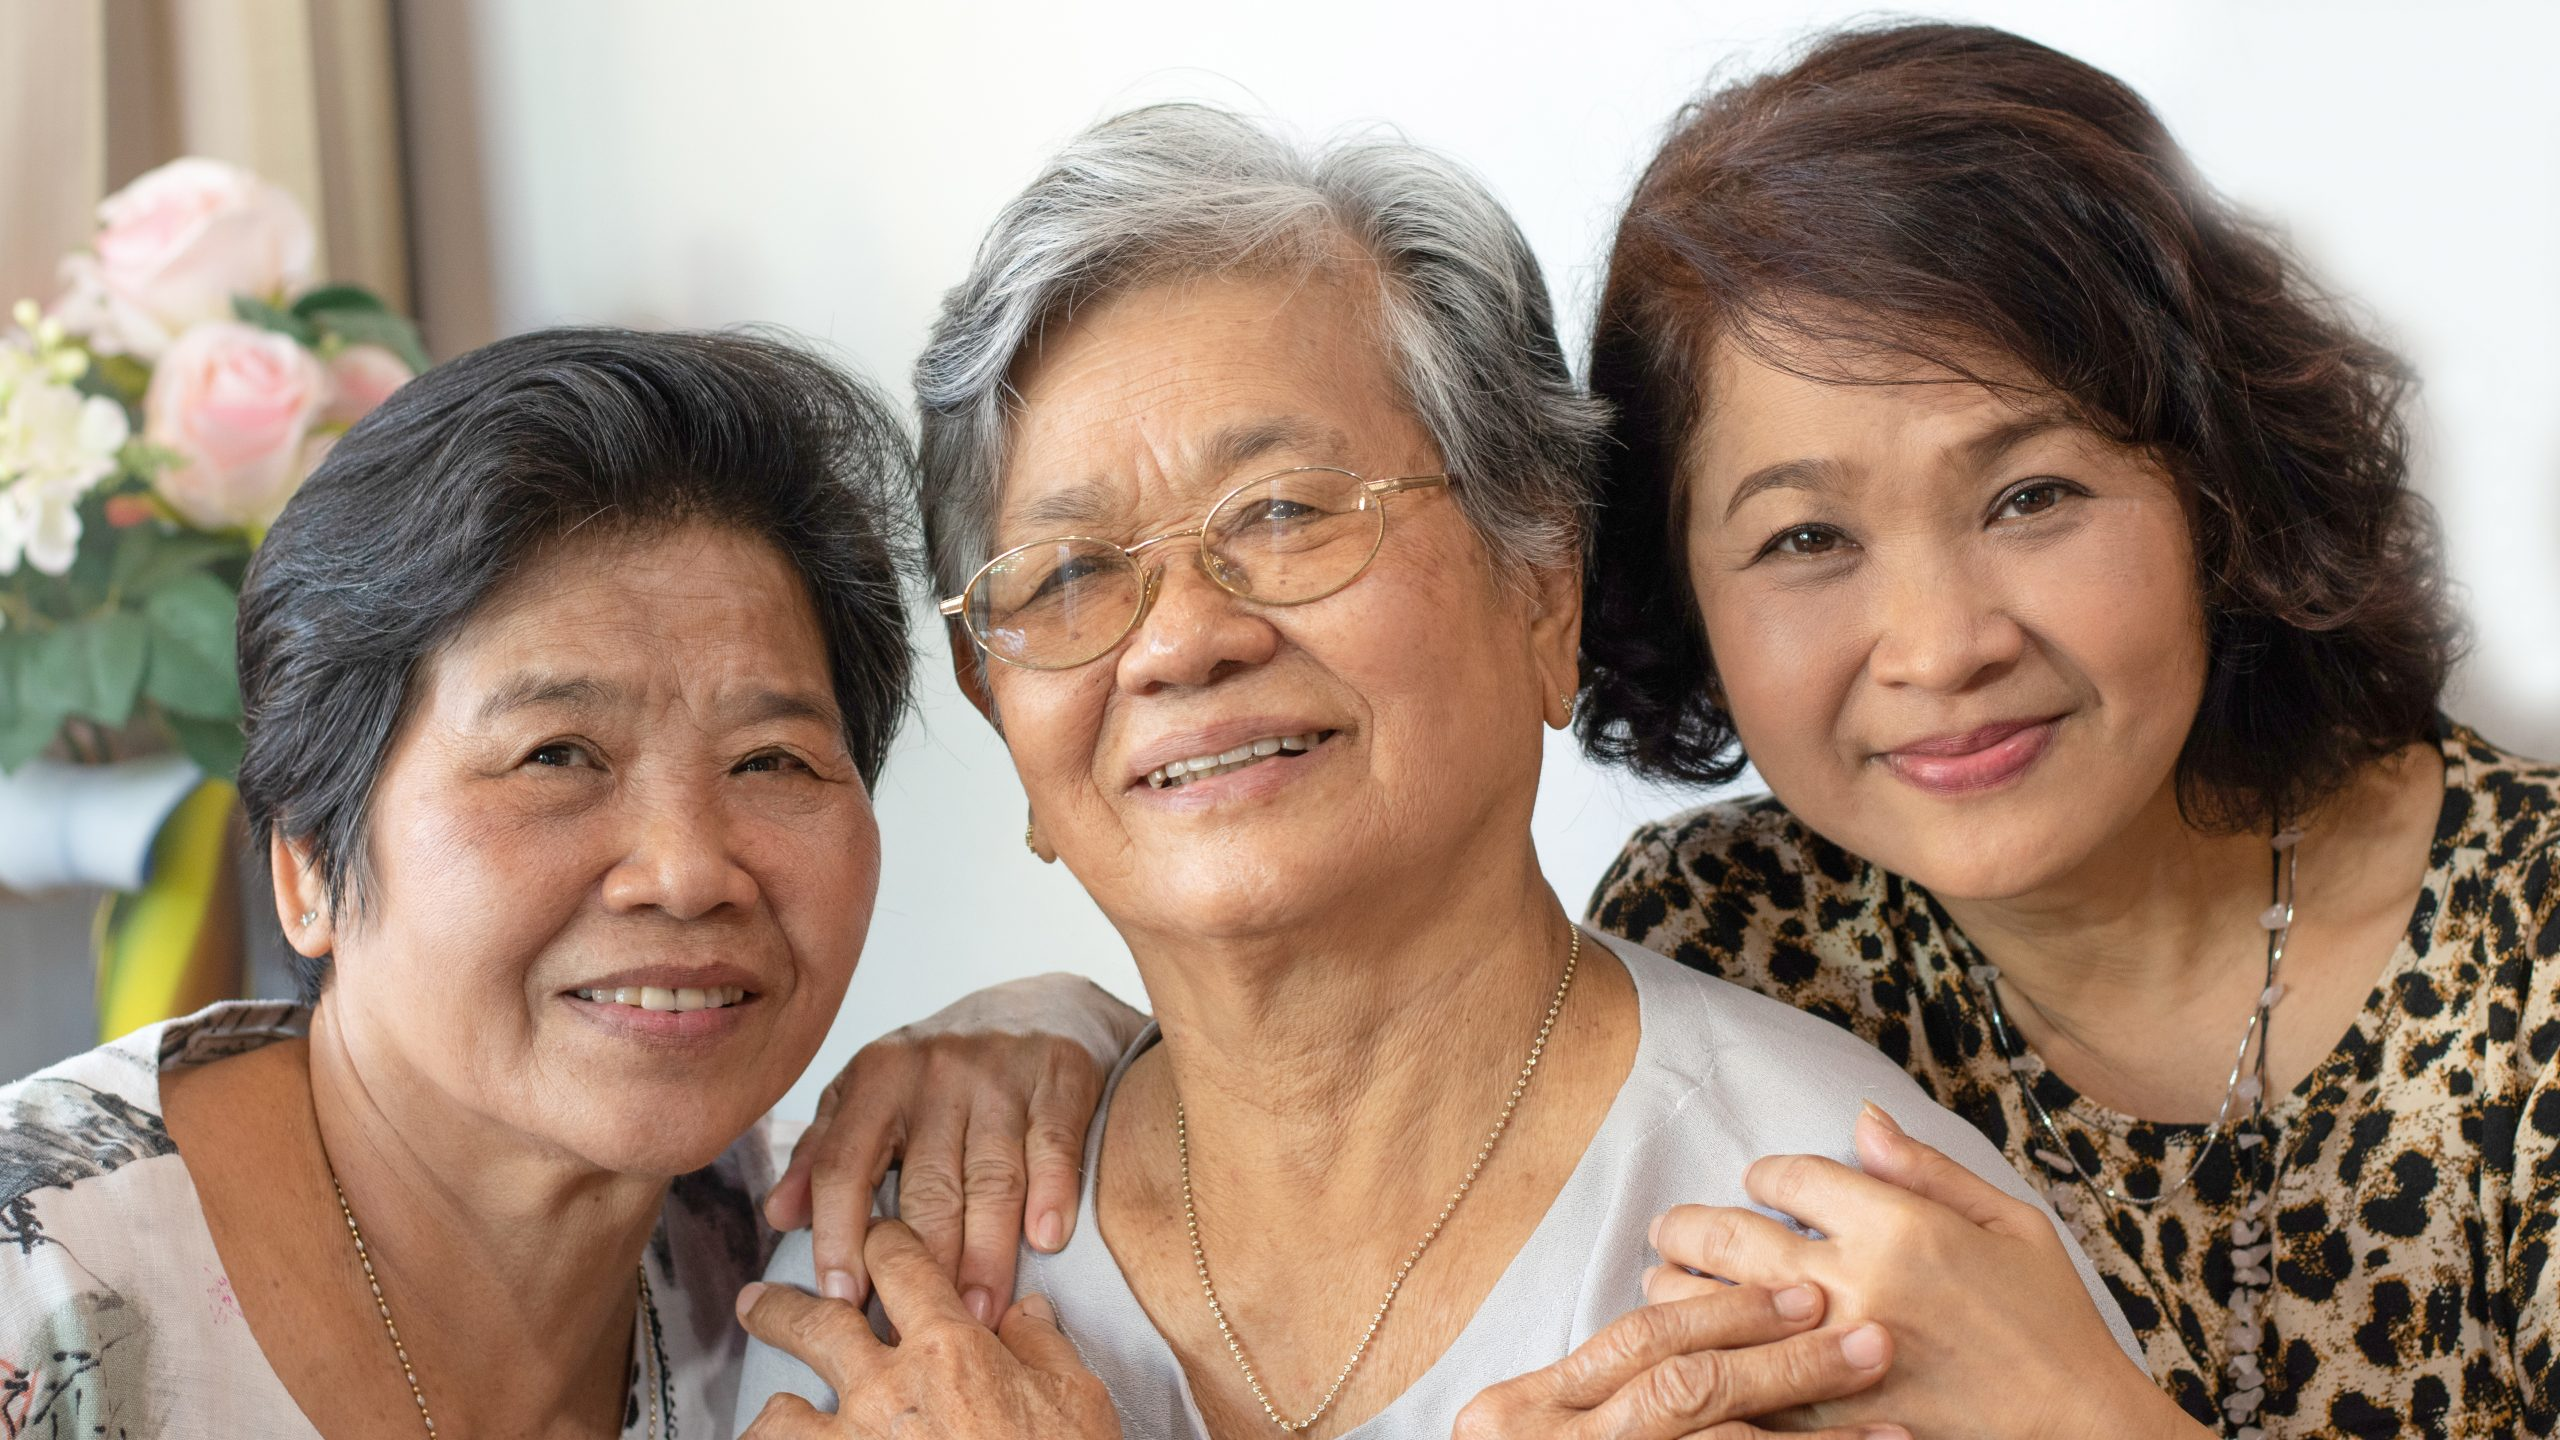 Three inter-generational Asian women